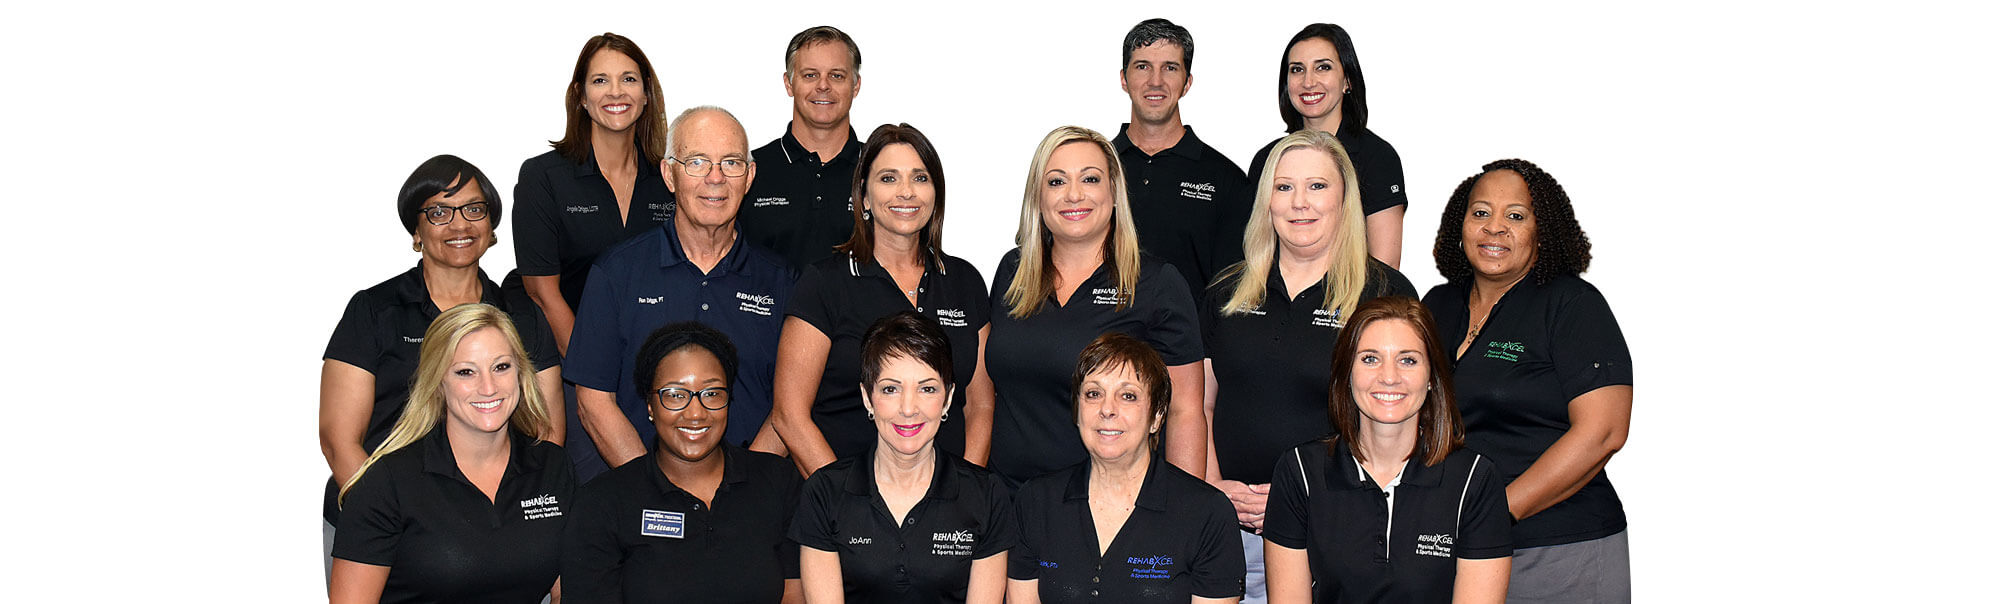 Rehabxcel Physical Therapy Sports Medicine In Eunice And Iota La